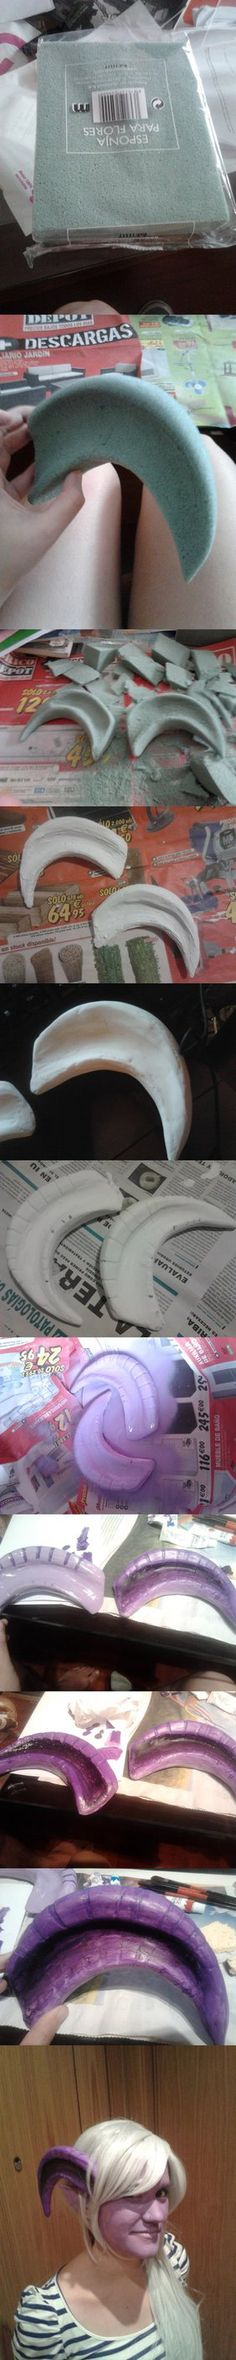 How to make cosplay Horns by ~brainsandwich on deviantART (I'm pinning this because she is using florist's foam, or whatever that is really called. That is so clever and I never thought of doing that before!) Costumes, How to Do Keka❤❤❤ Cool Costumes, Cosplay Costumes, Halloween Costumes, Costume Ideas, Male Cosplay, Cosplay Diy, Cosplay Ideas, Larp, Photos Booth